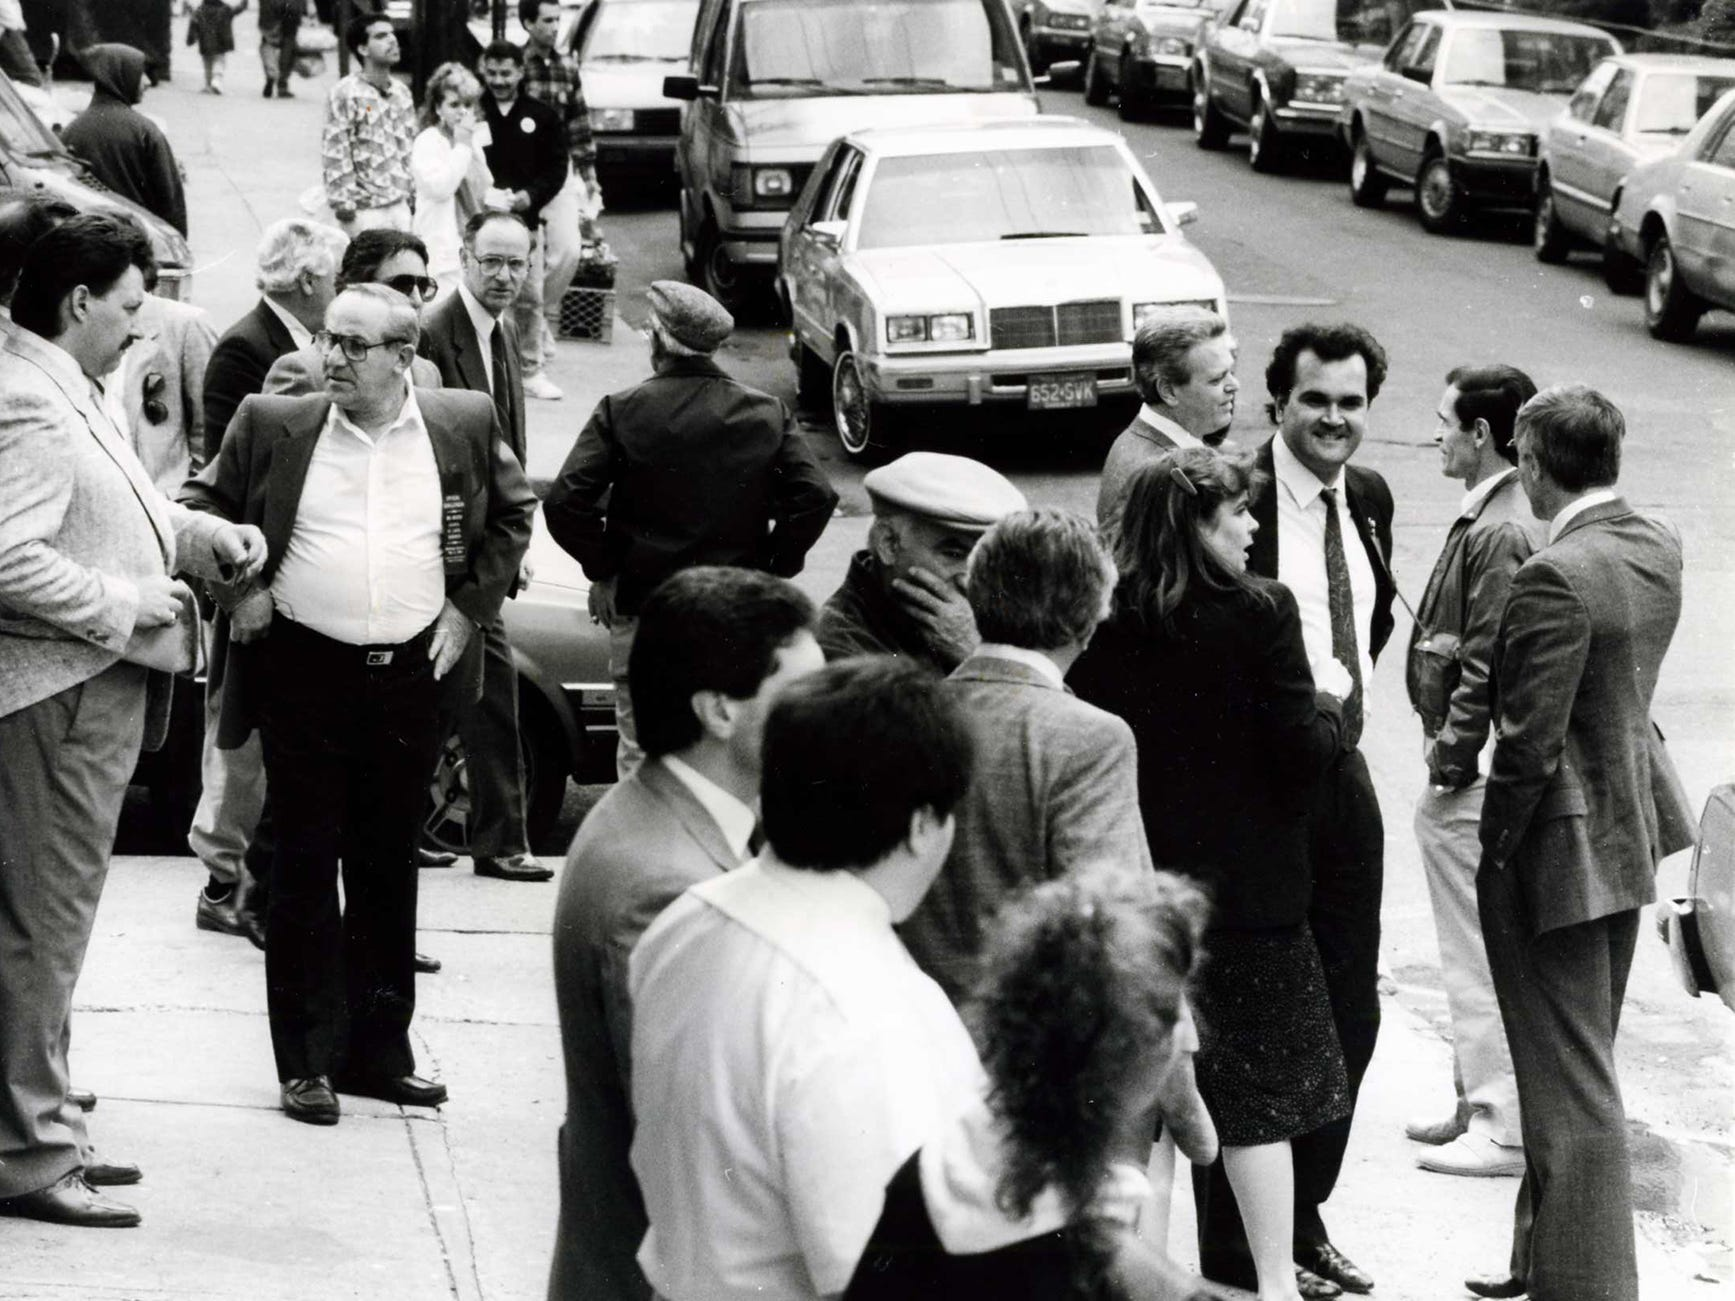 Residents gather at a polling site in May 1989 at 5th and Adams streets.